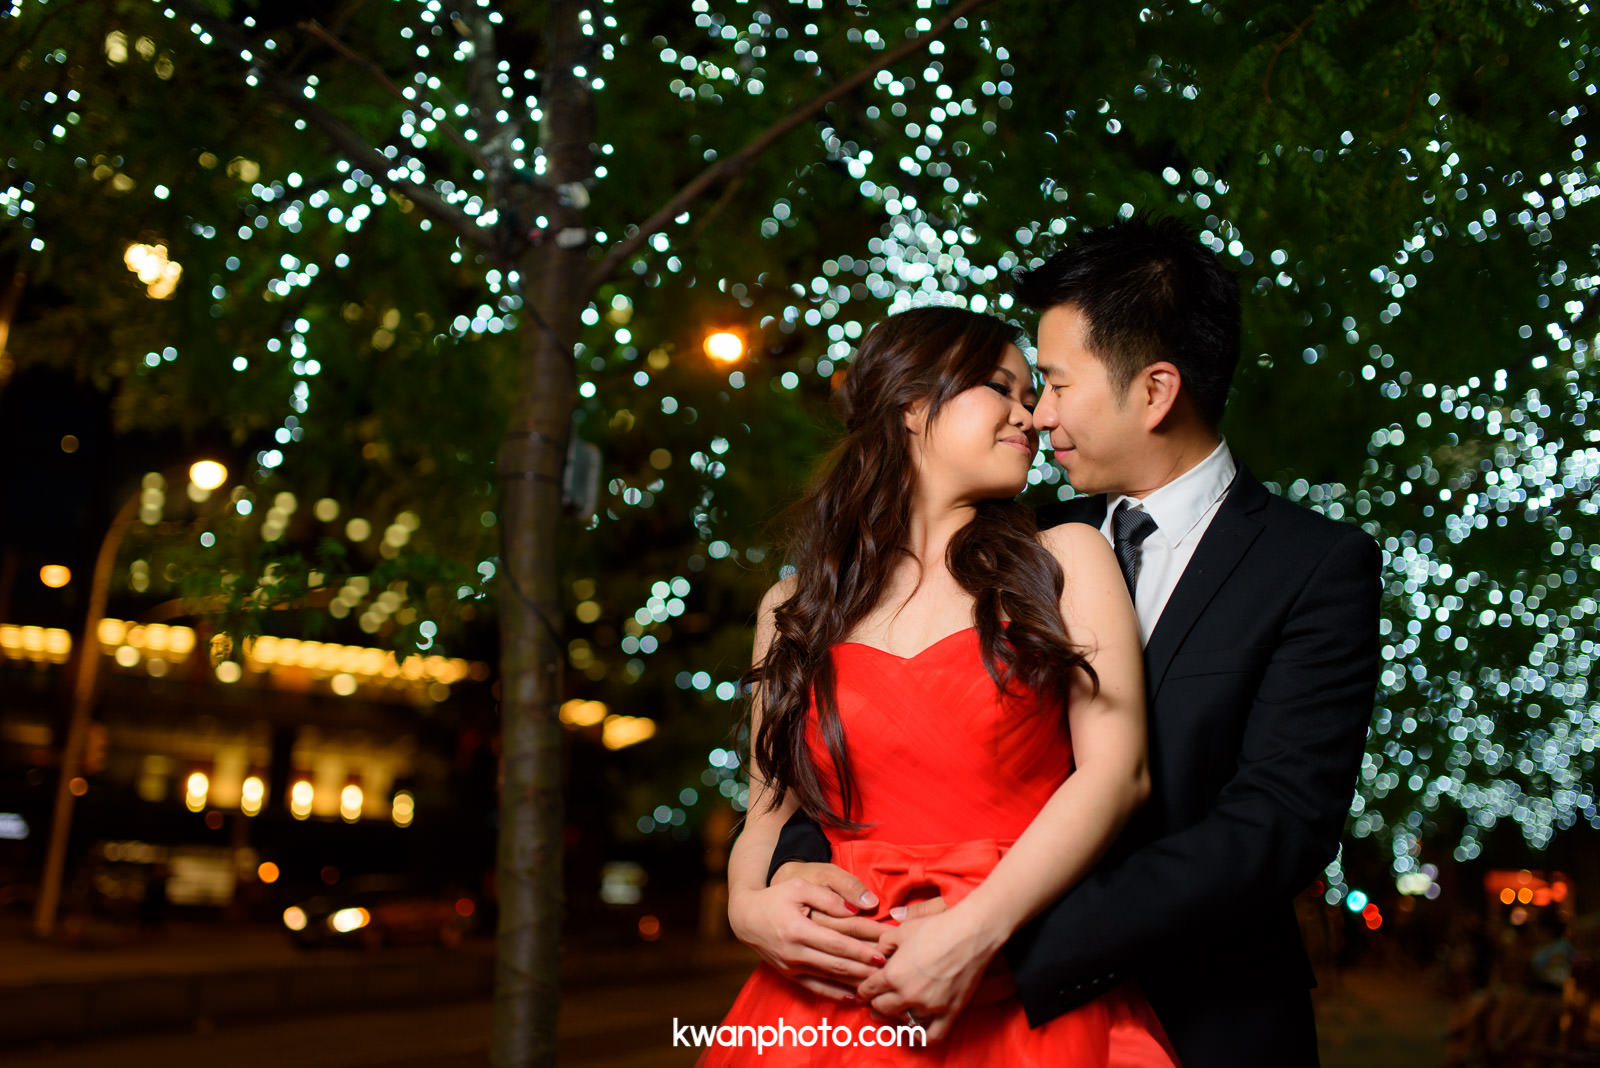 Evelyn_Bernad_Engagement-15.jpg